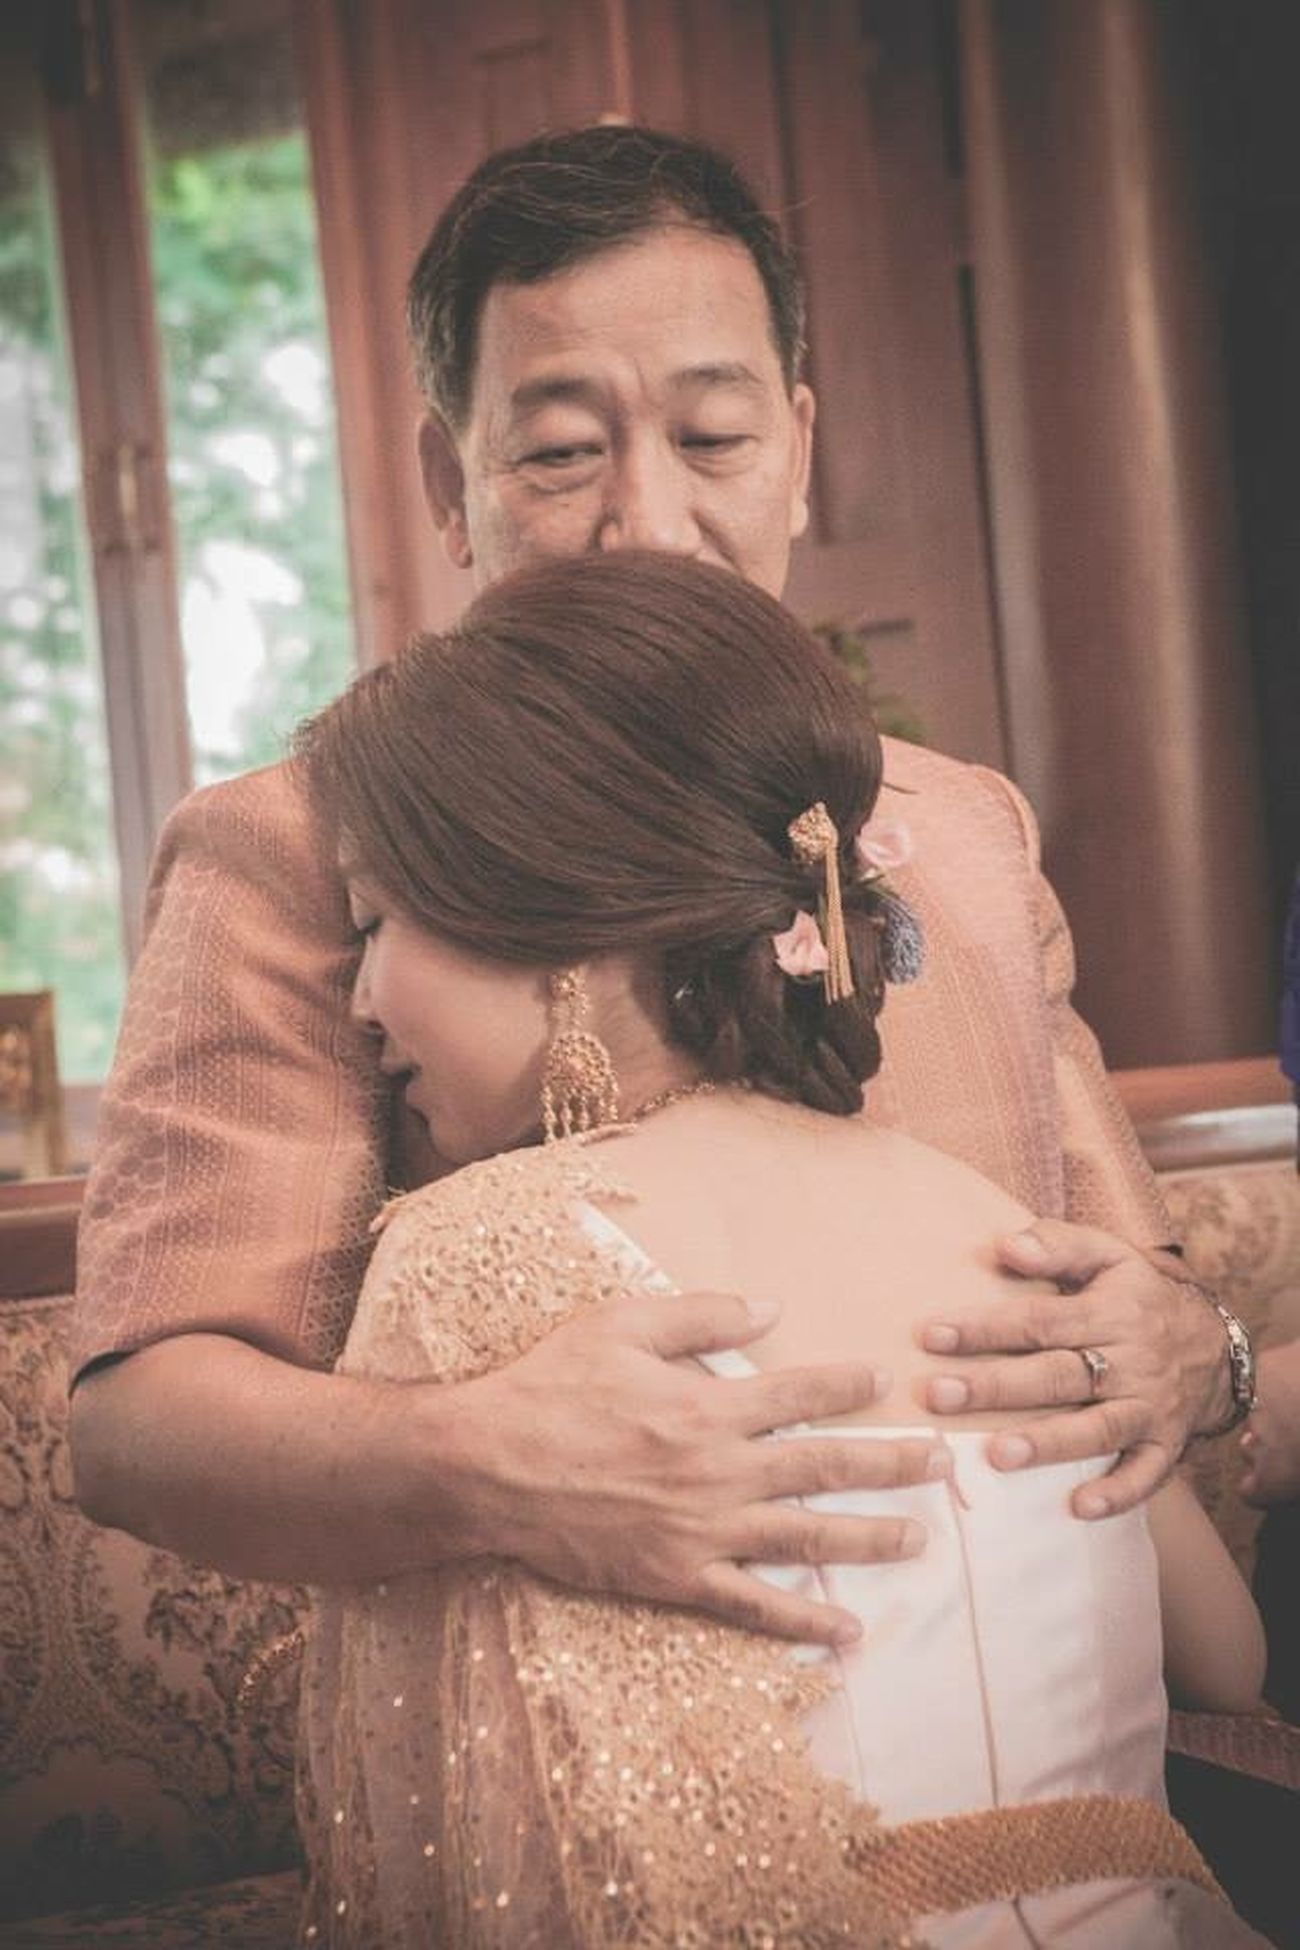 What I Value Dad Wedding Photography Wedding Day Wedding Bride PreciousMoments Special Life The Moment - 2015 EyeEm Awards